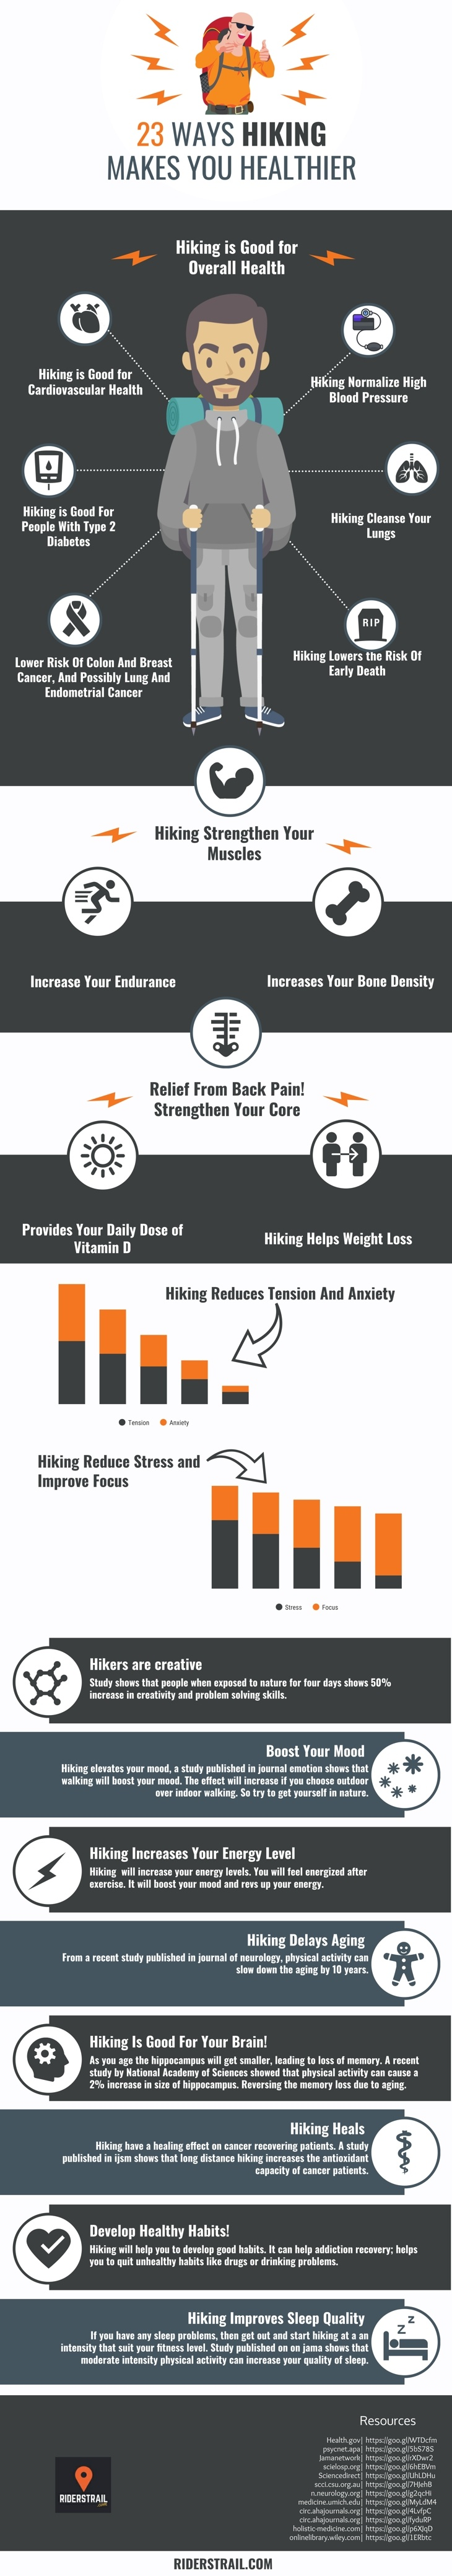 Hiking-Benefit-23-ways-hiking-makes-you-healthier